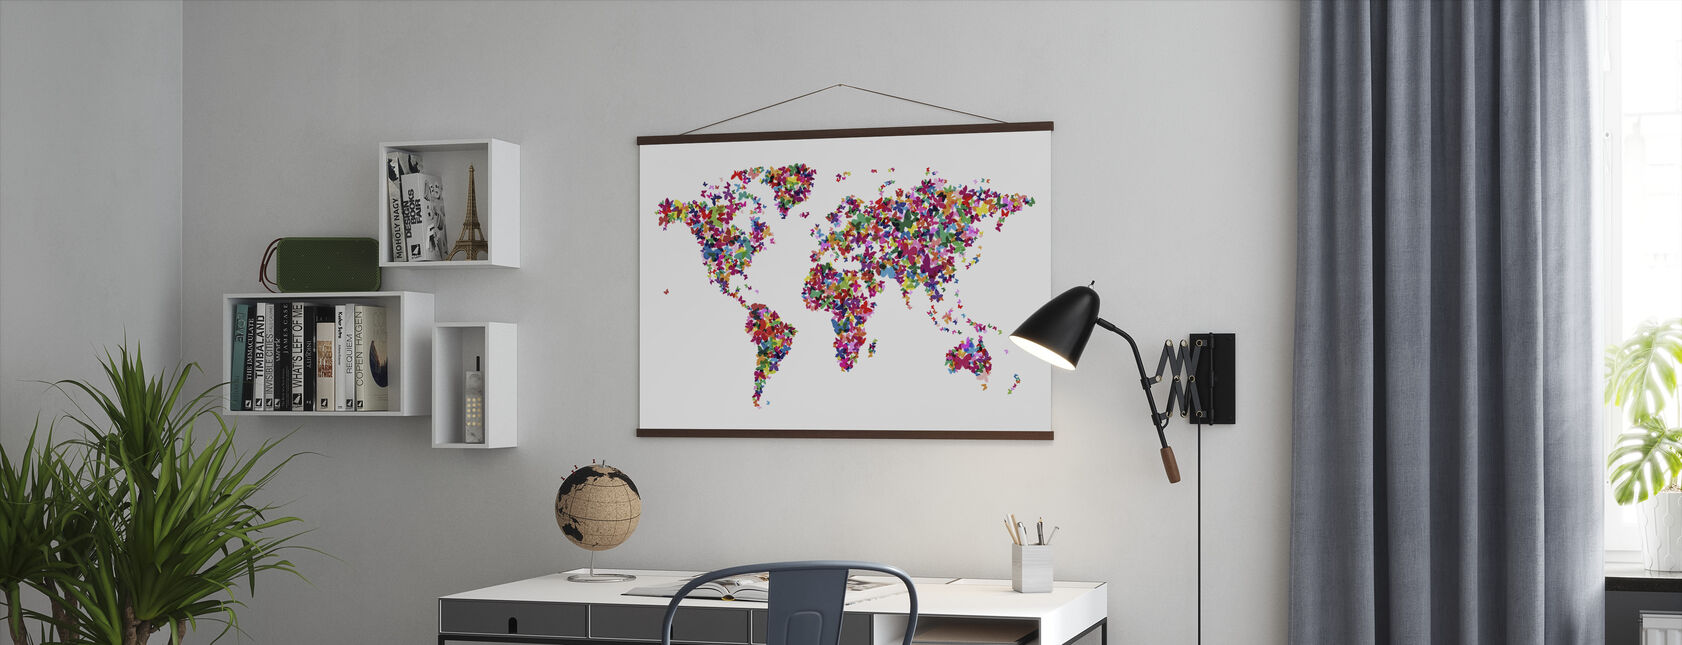 Butterflies World Map Multicolor - Poster - Office